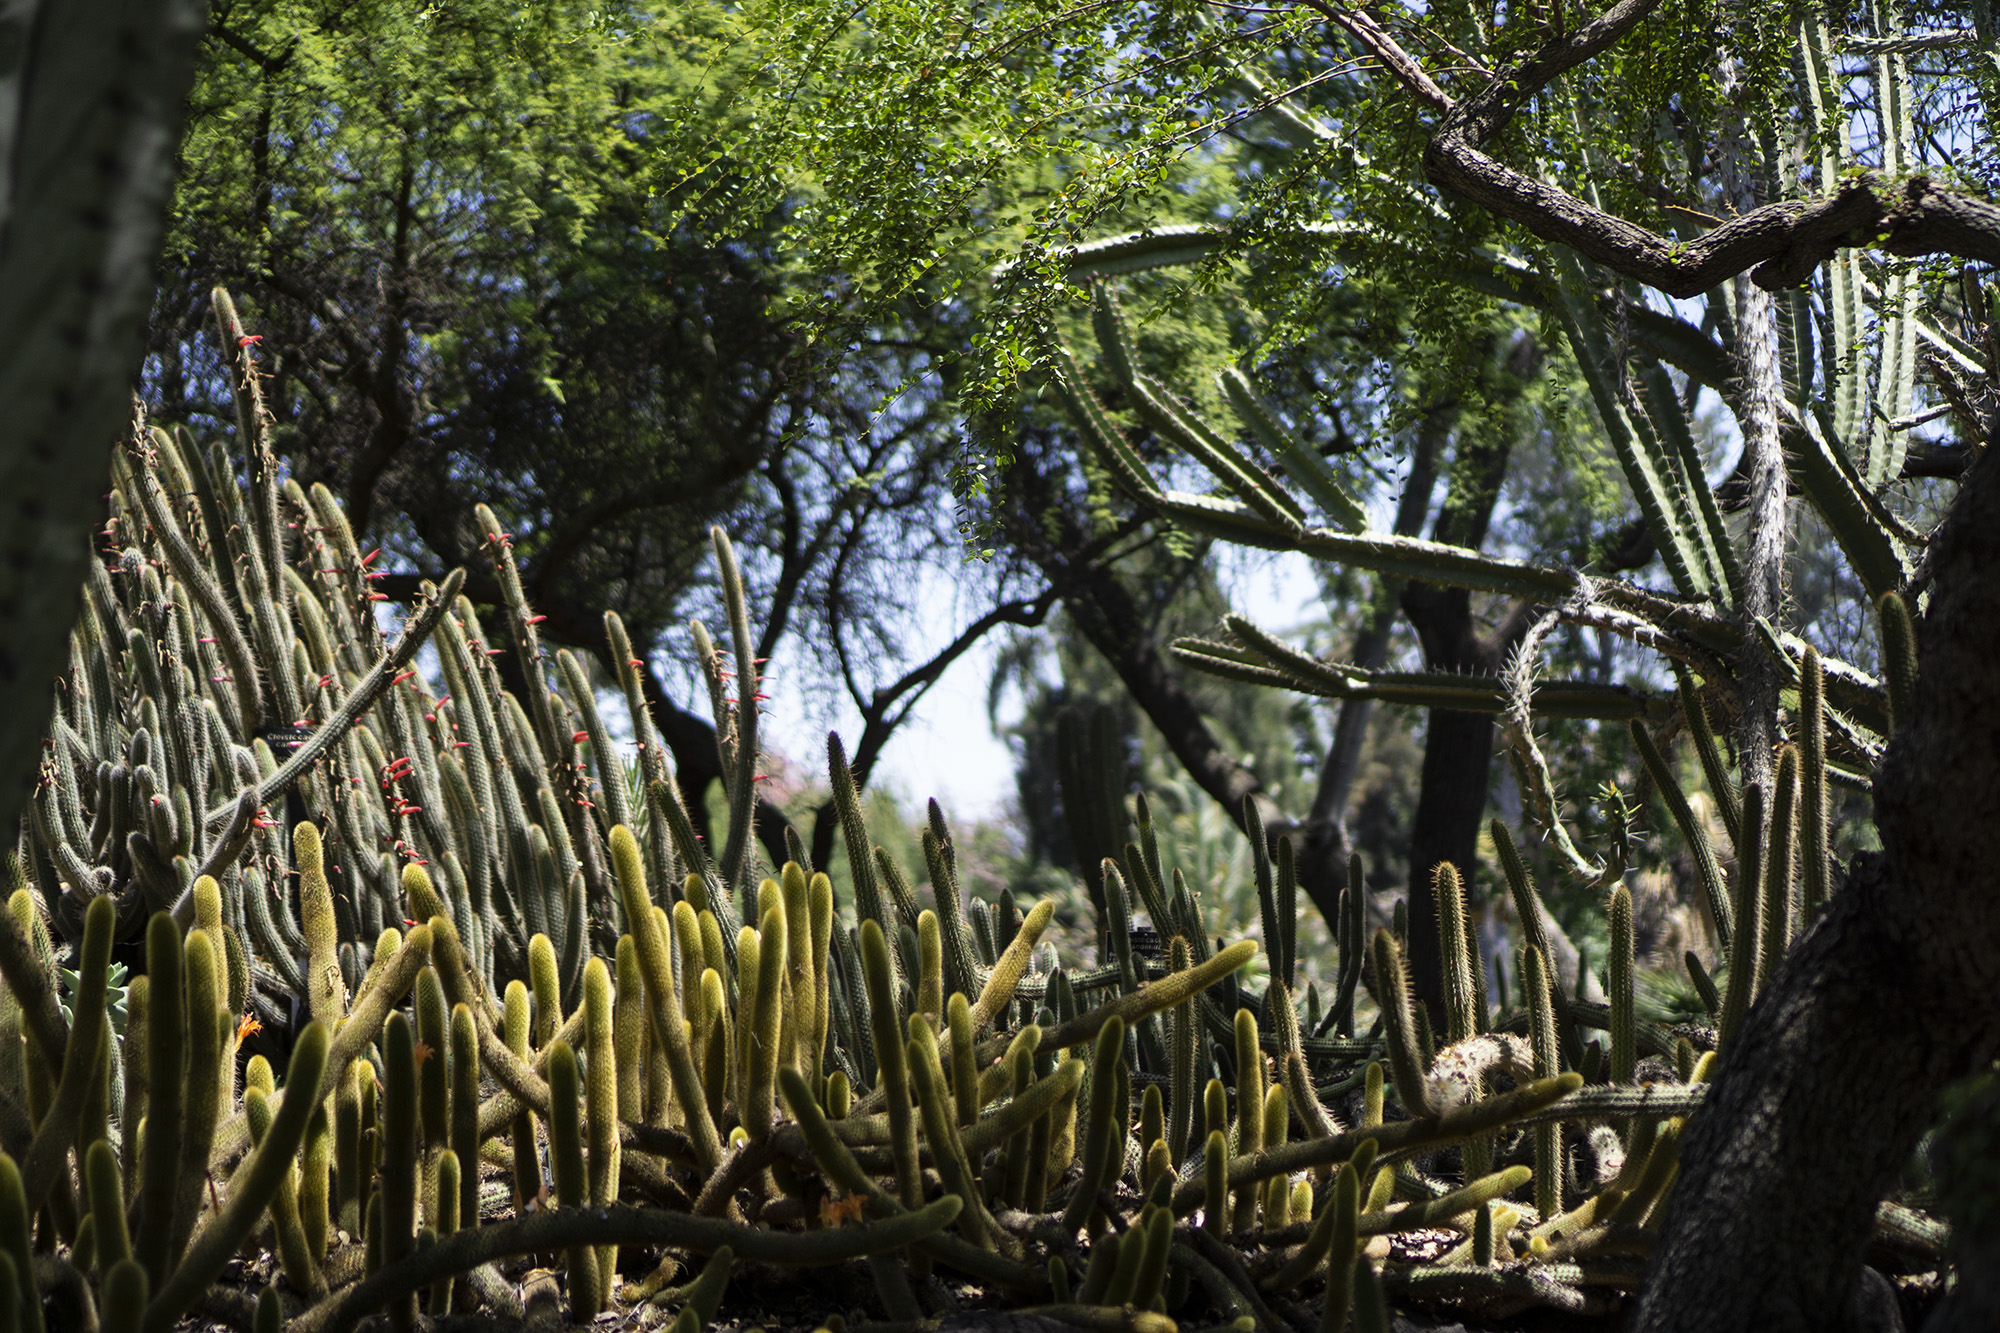 Cactus patch in the shade, Desert Garden, Huntington Library, San Marino CA / Darker than Green